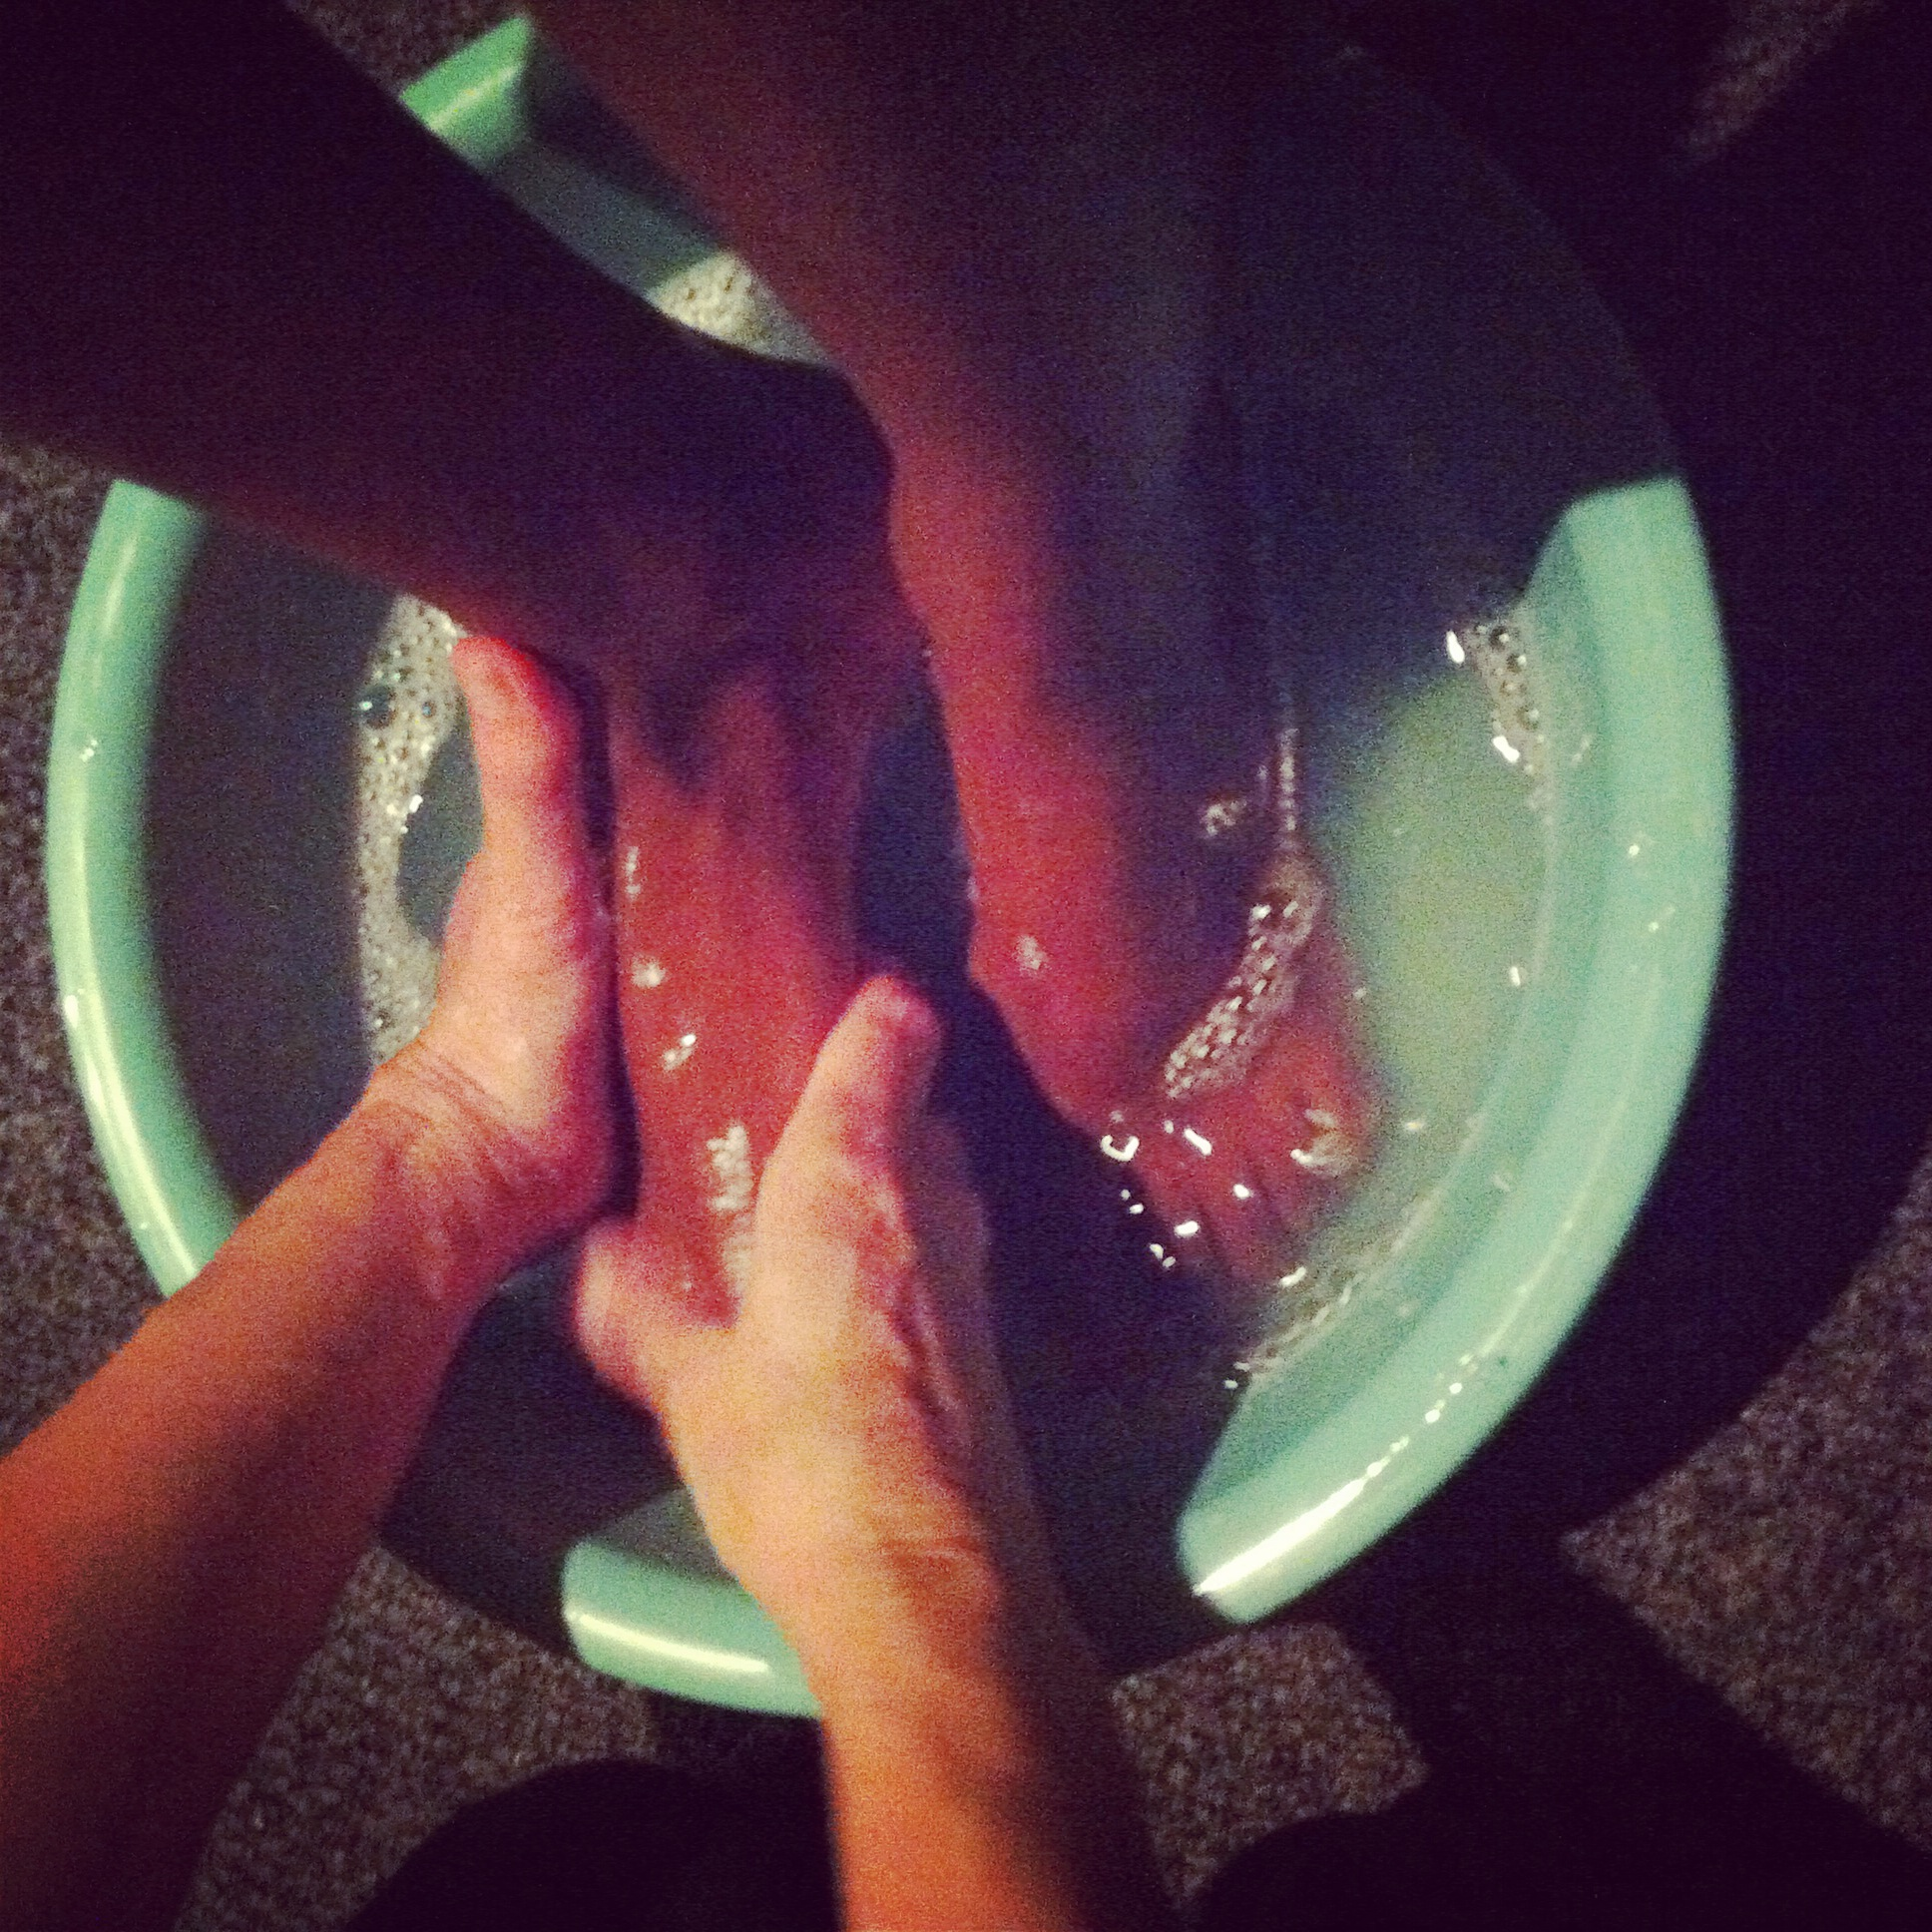 Washing the ladies feet